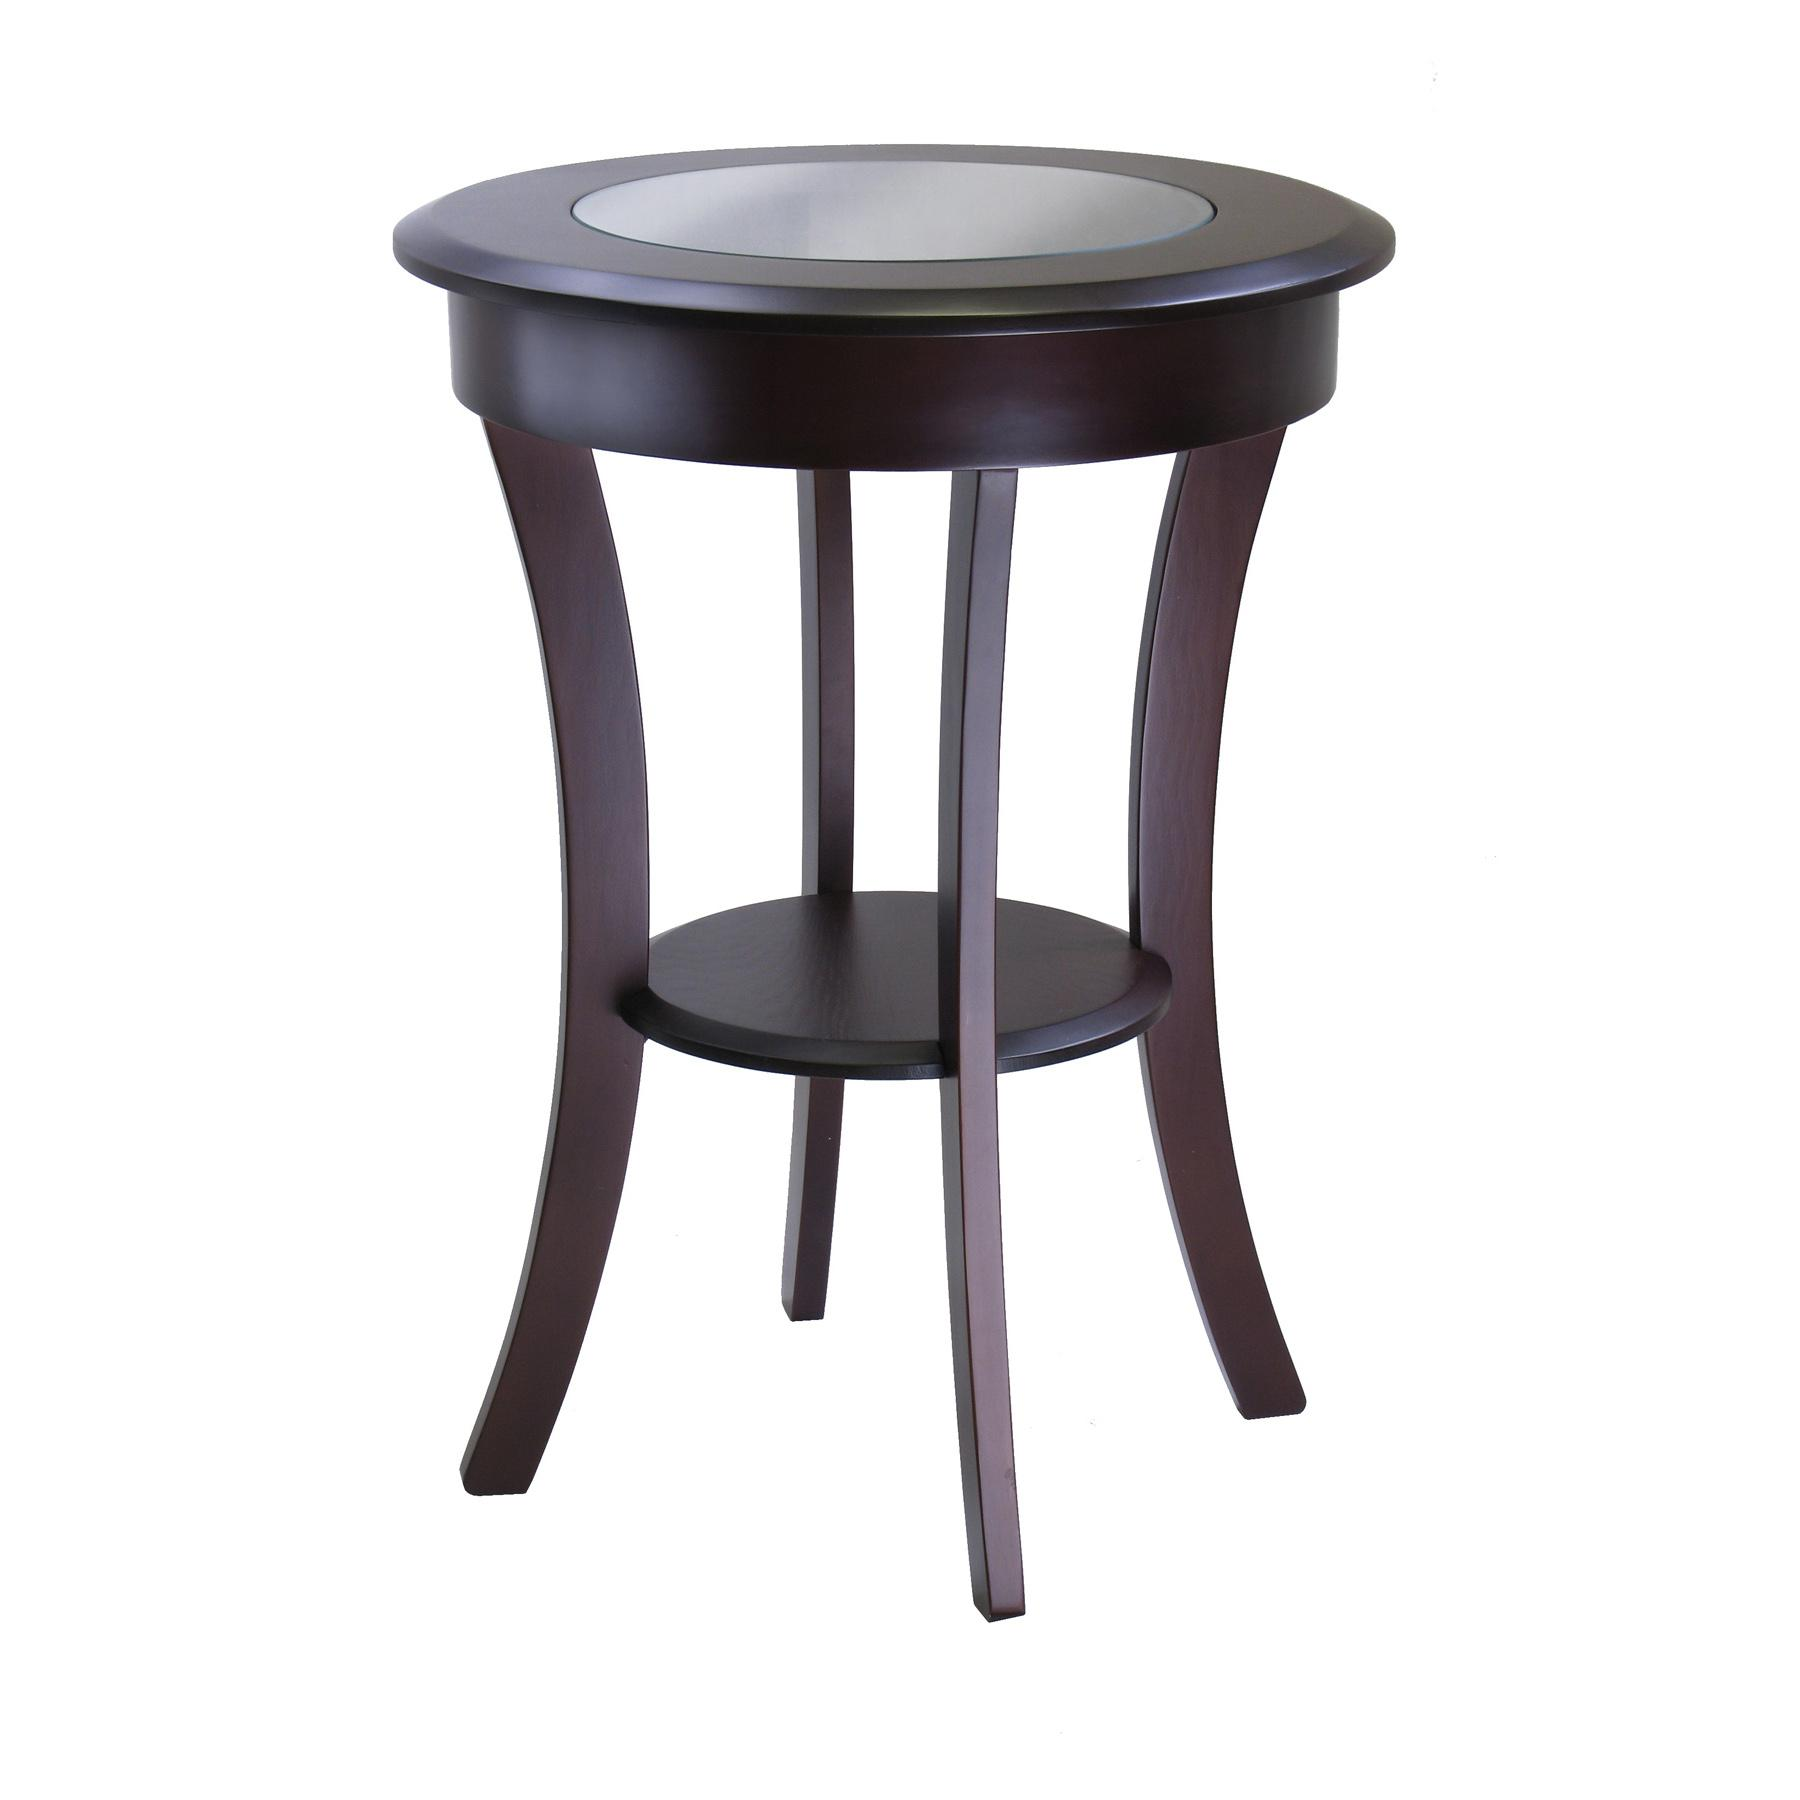 surprising inch tall round accent table decorating patio cover rentals chairs rent tablecloth and tables ideas small for stools covers kitchen full size entry hall koncept